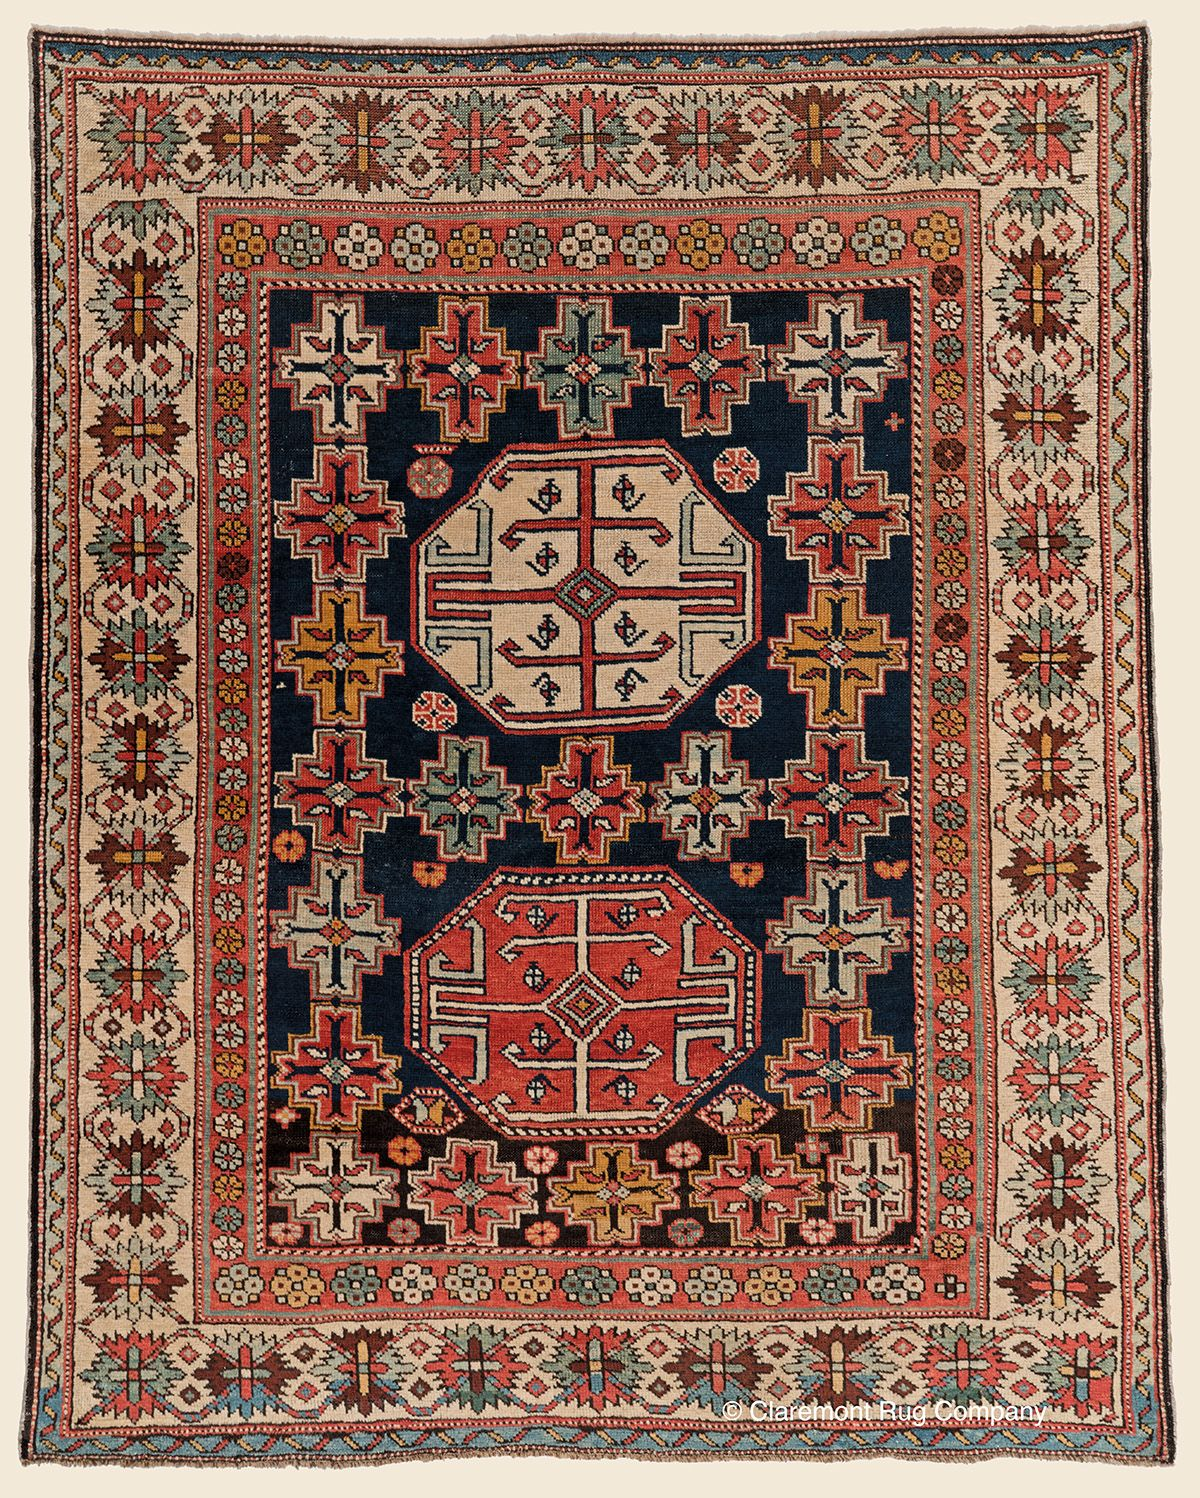 Sorry This Rug Is No Longer Available Claremont Rug Company Claremont Rug Company Rugs On Carpet Antique Rugs 19th Century